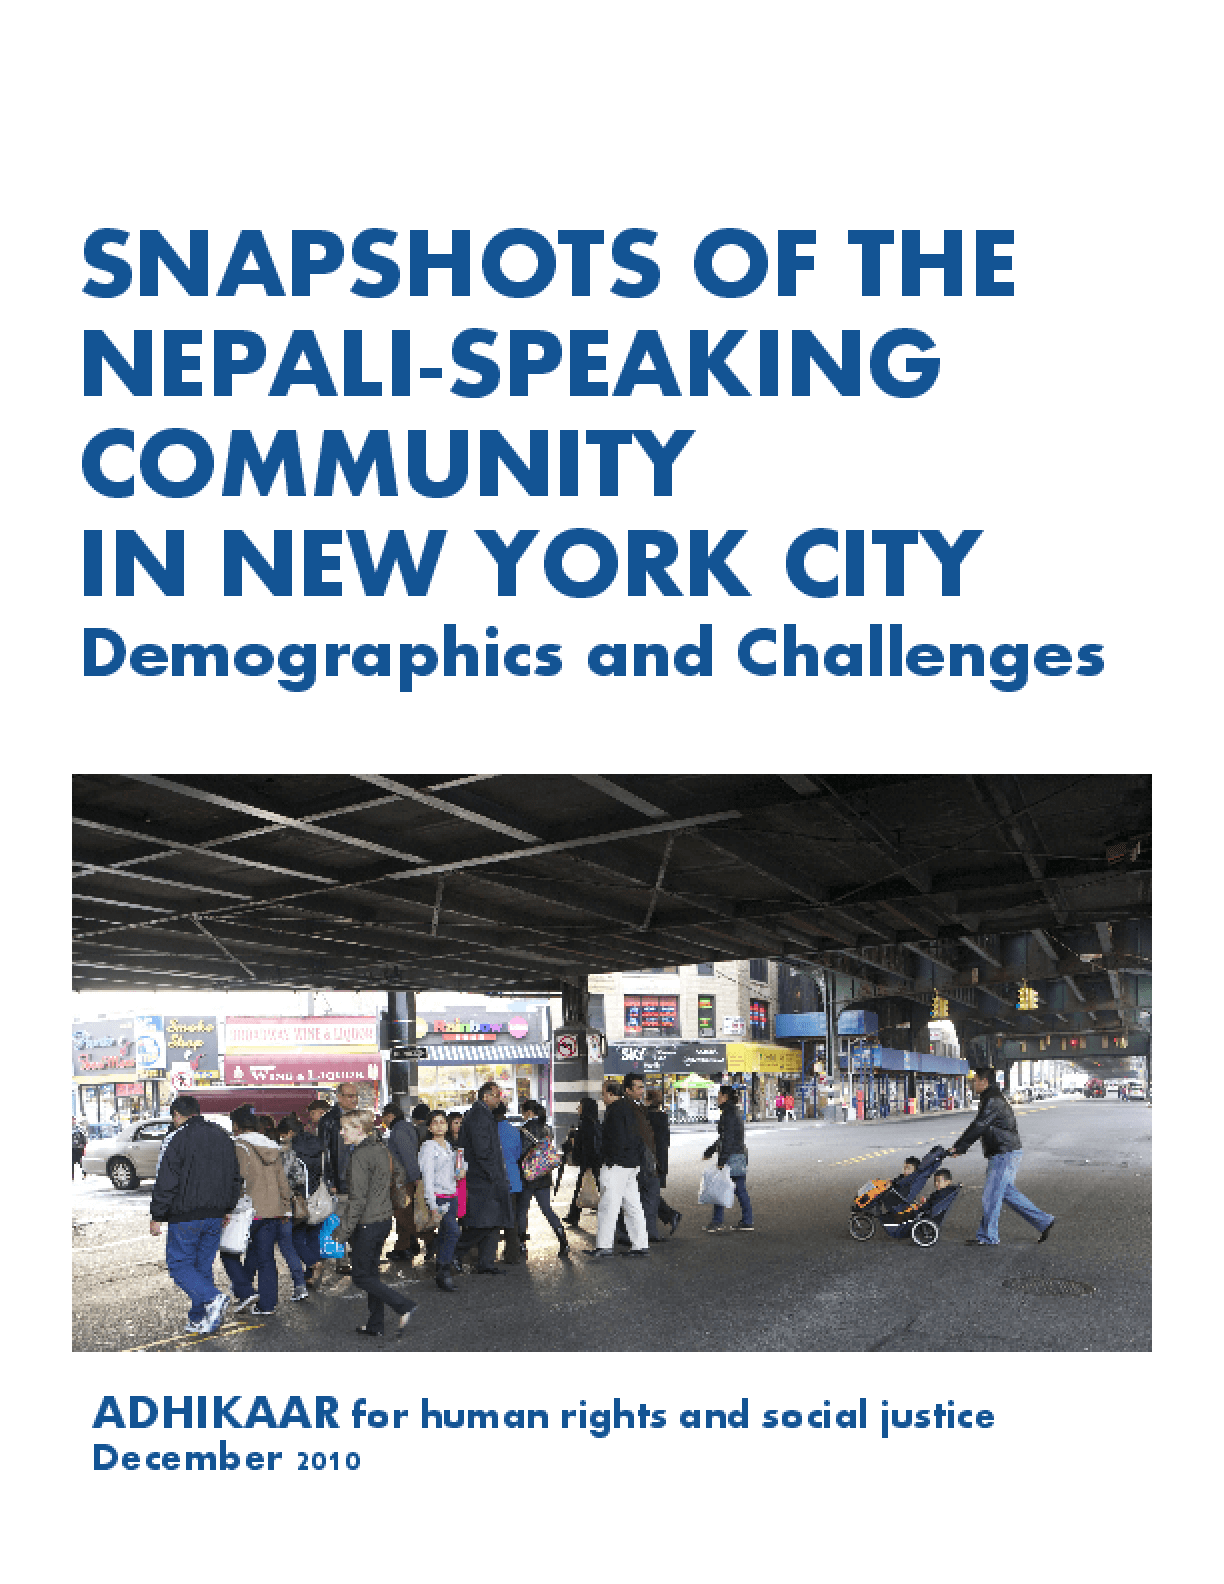 Snapshots of the Nepali-Speaking Community in New York City: Demographics and Challenges